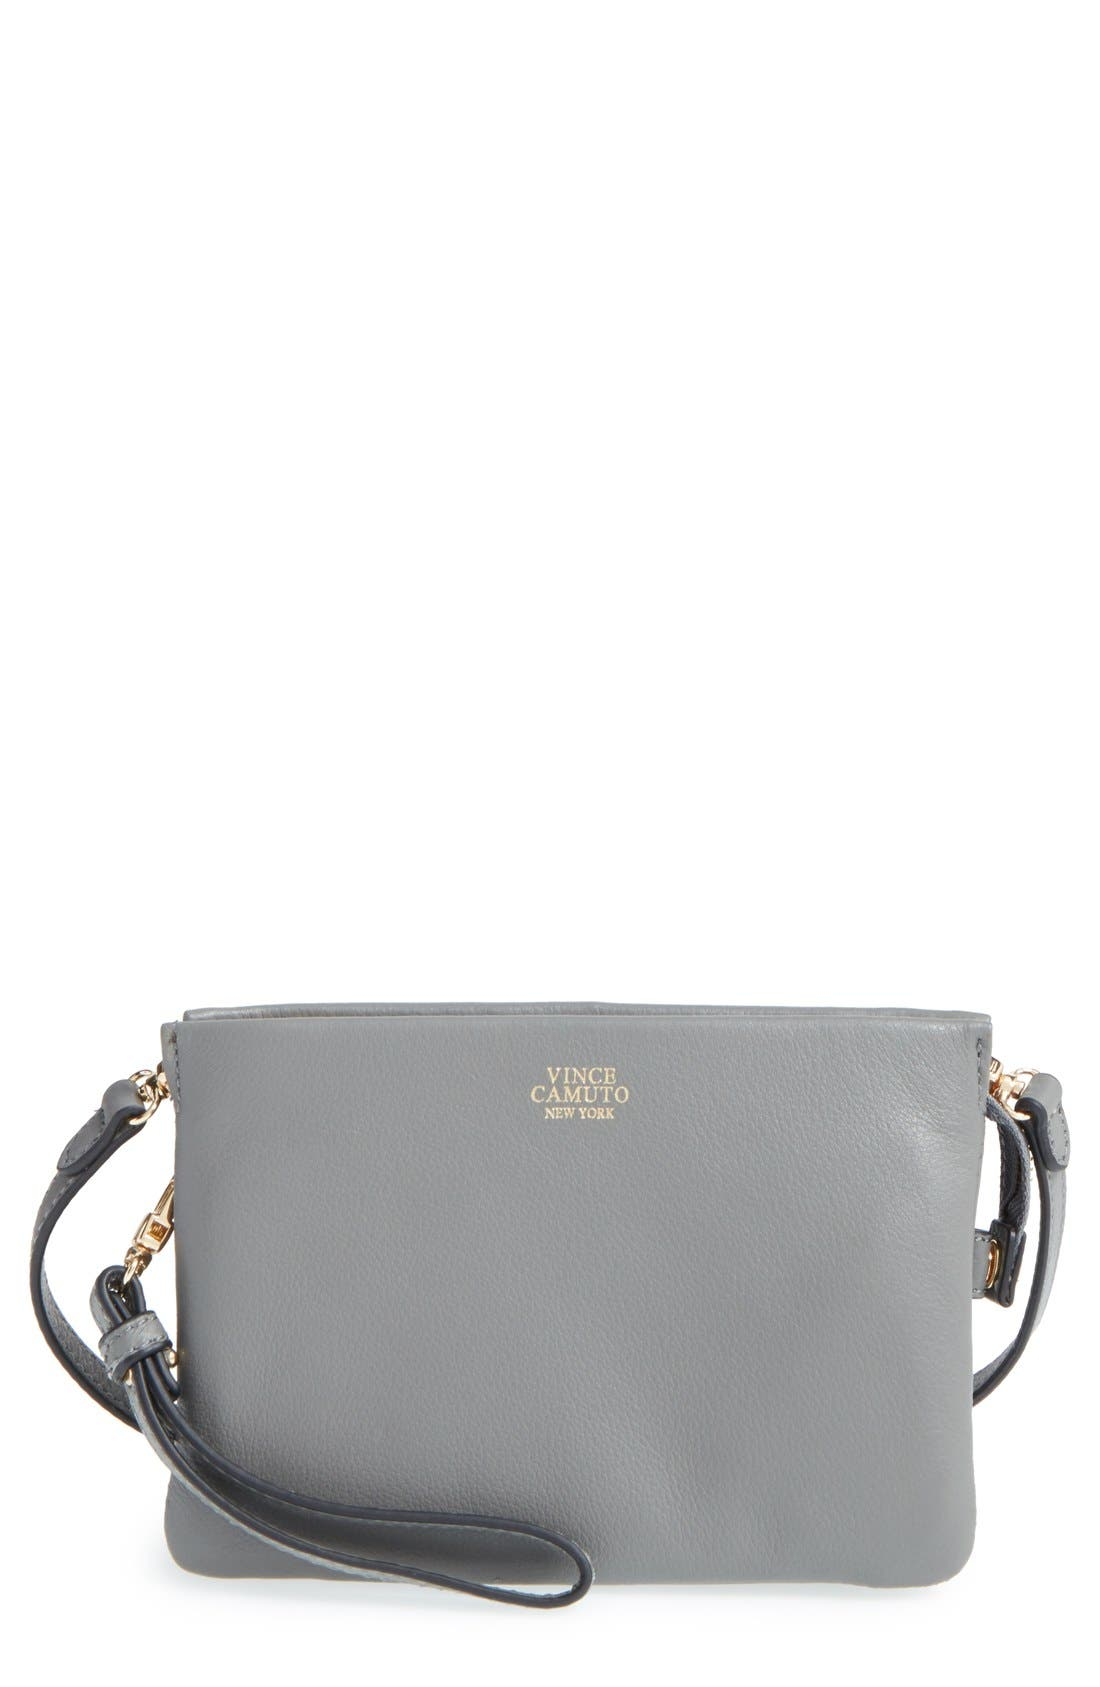 'Cami' Leather Crossbody Bag,                             Main thumbnail 4, color,